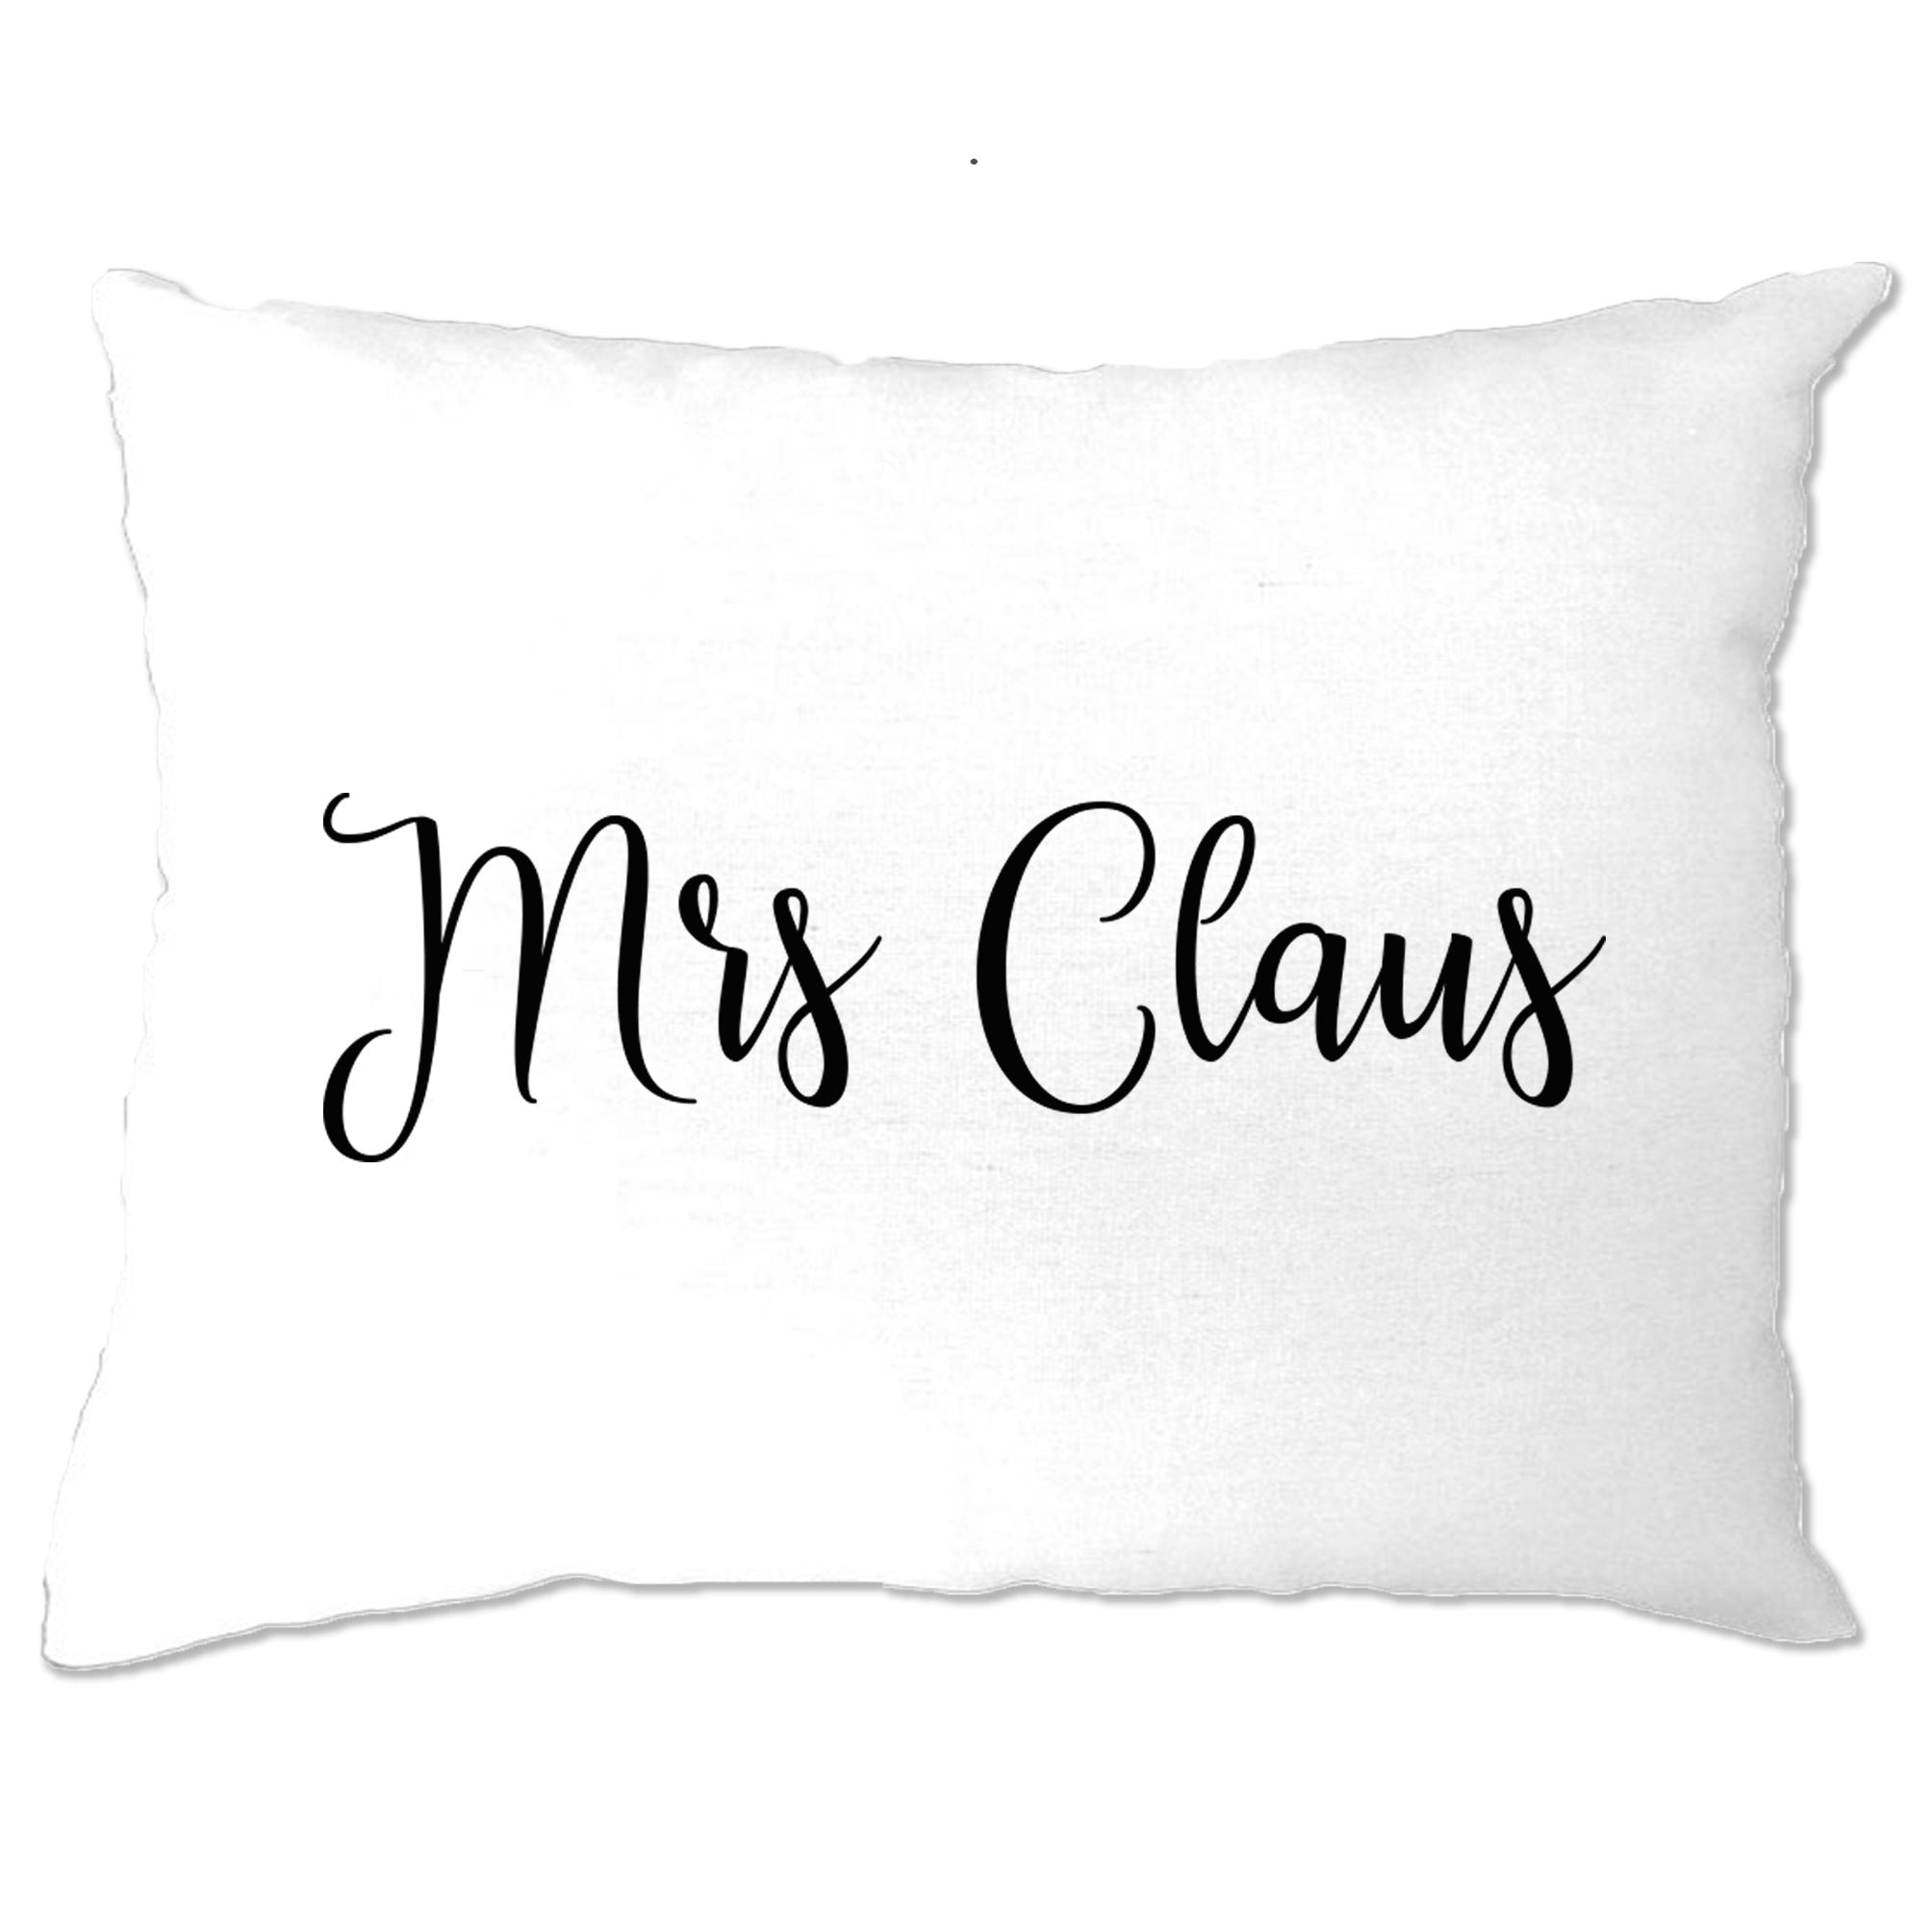 Novelty Christmas Pillow Case Mrs Claus Slogan